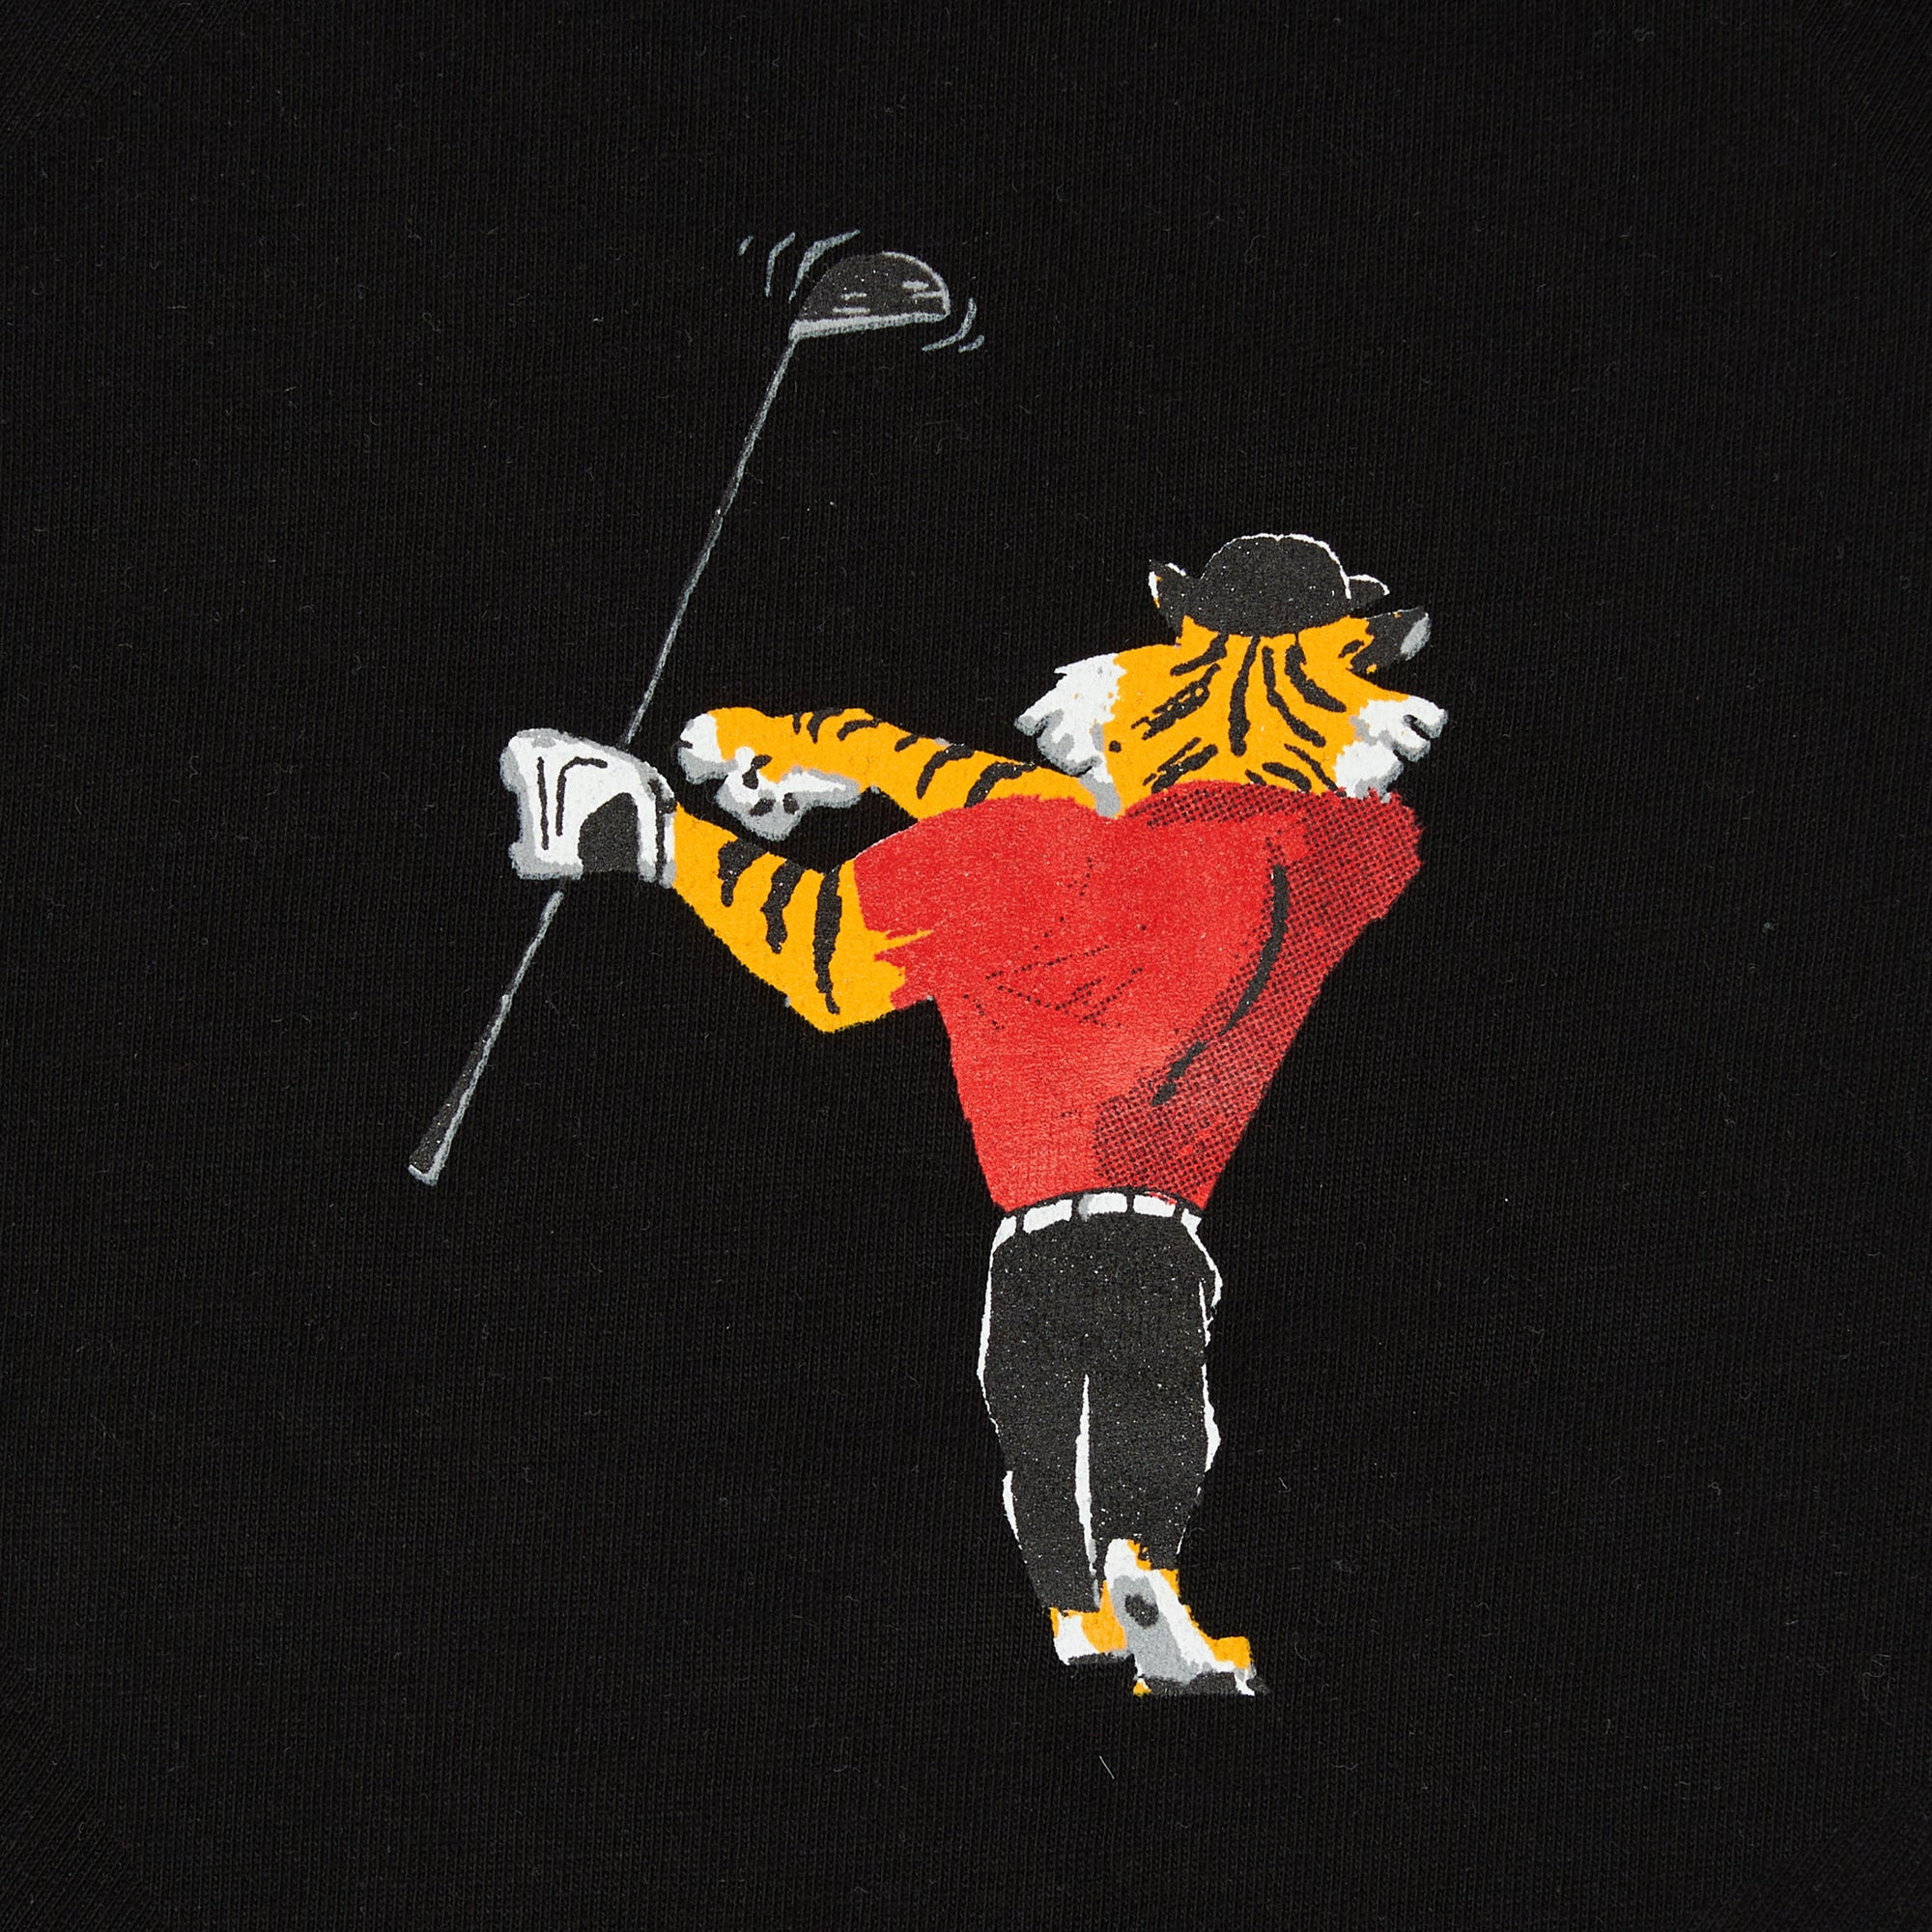 birds-of-condor-black-golf-tee-shirt-le-tigre-front